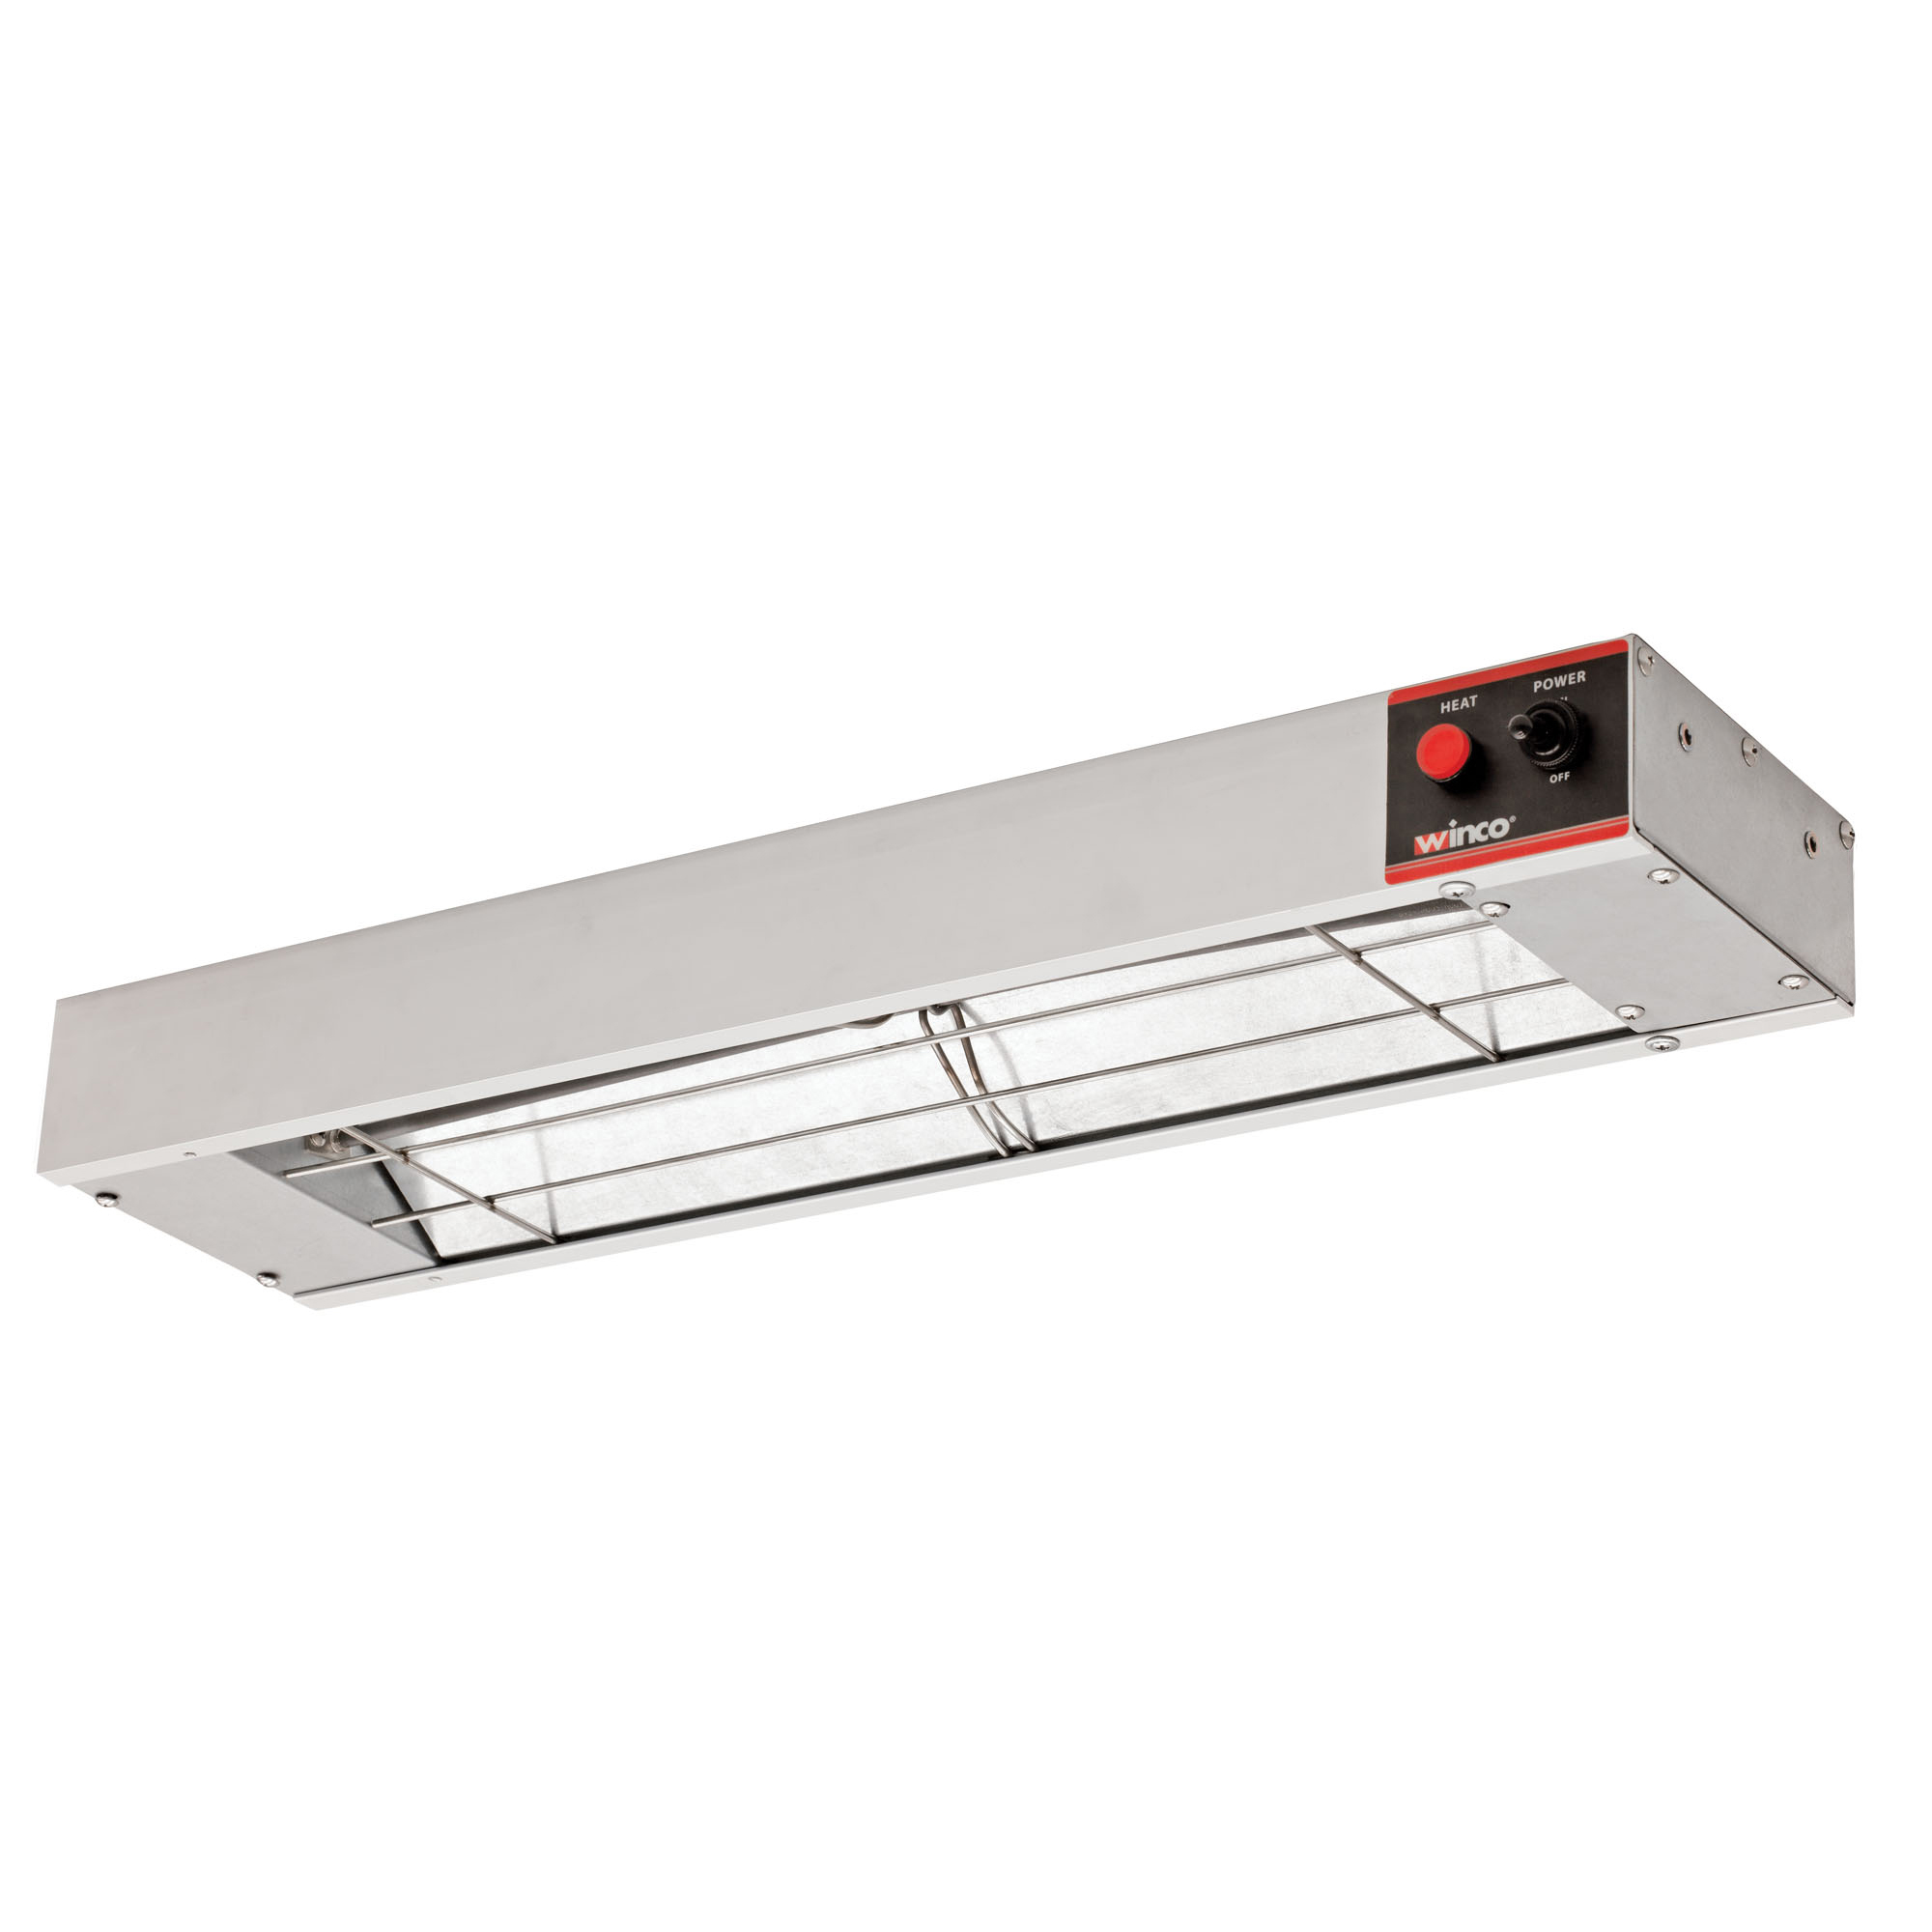 Winco ESH-24 heat lamp, strip type